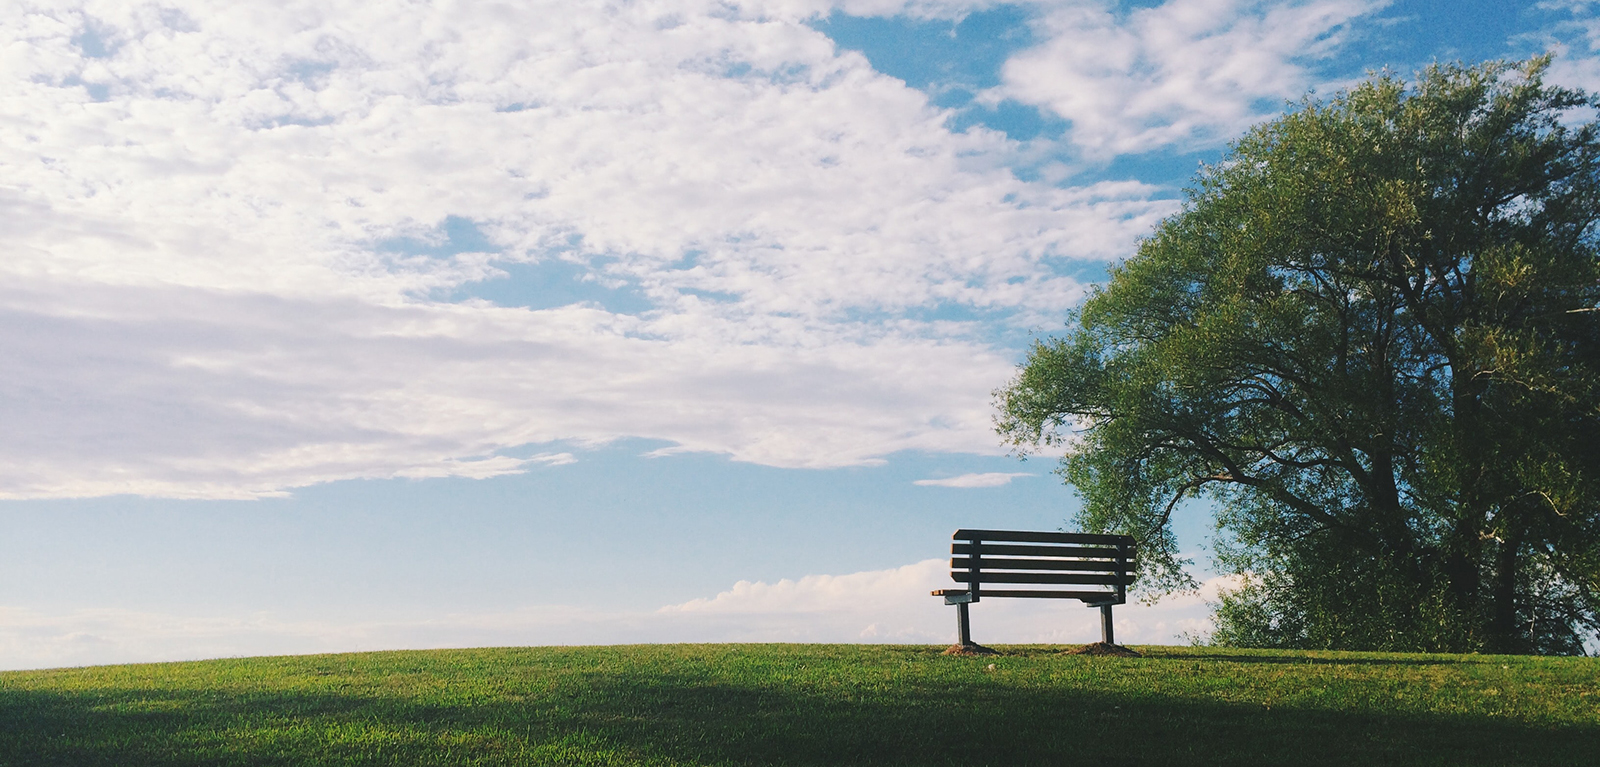 Bench on a hill under a tree